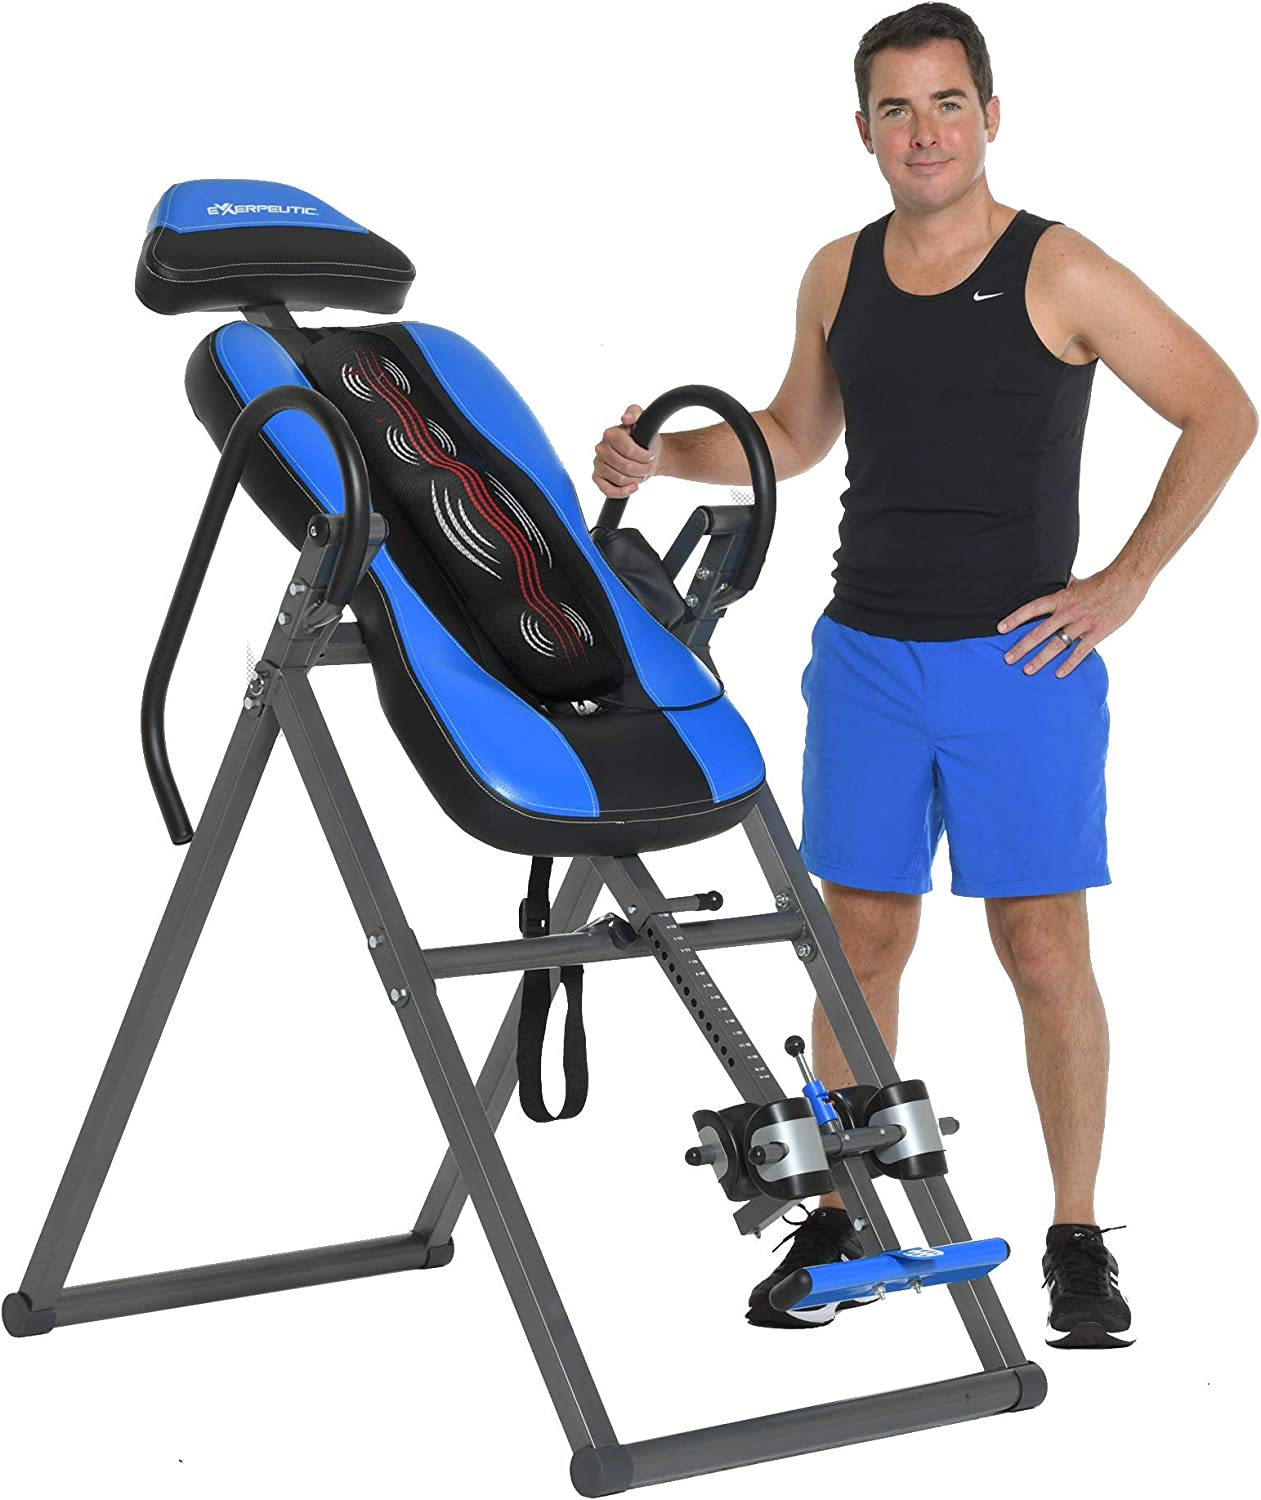 Exerpeutic Inversion Table UL Certified with Heat and Massage Therapy, Blue : Sports & Outdoors